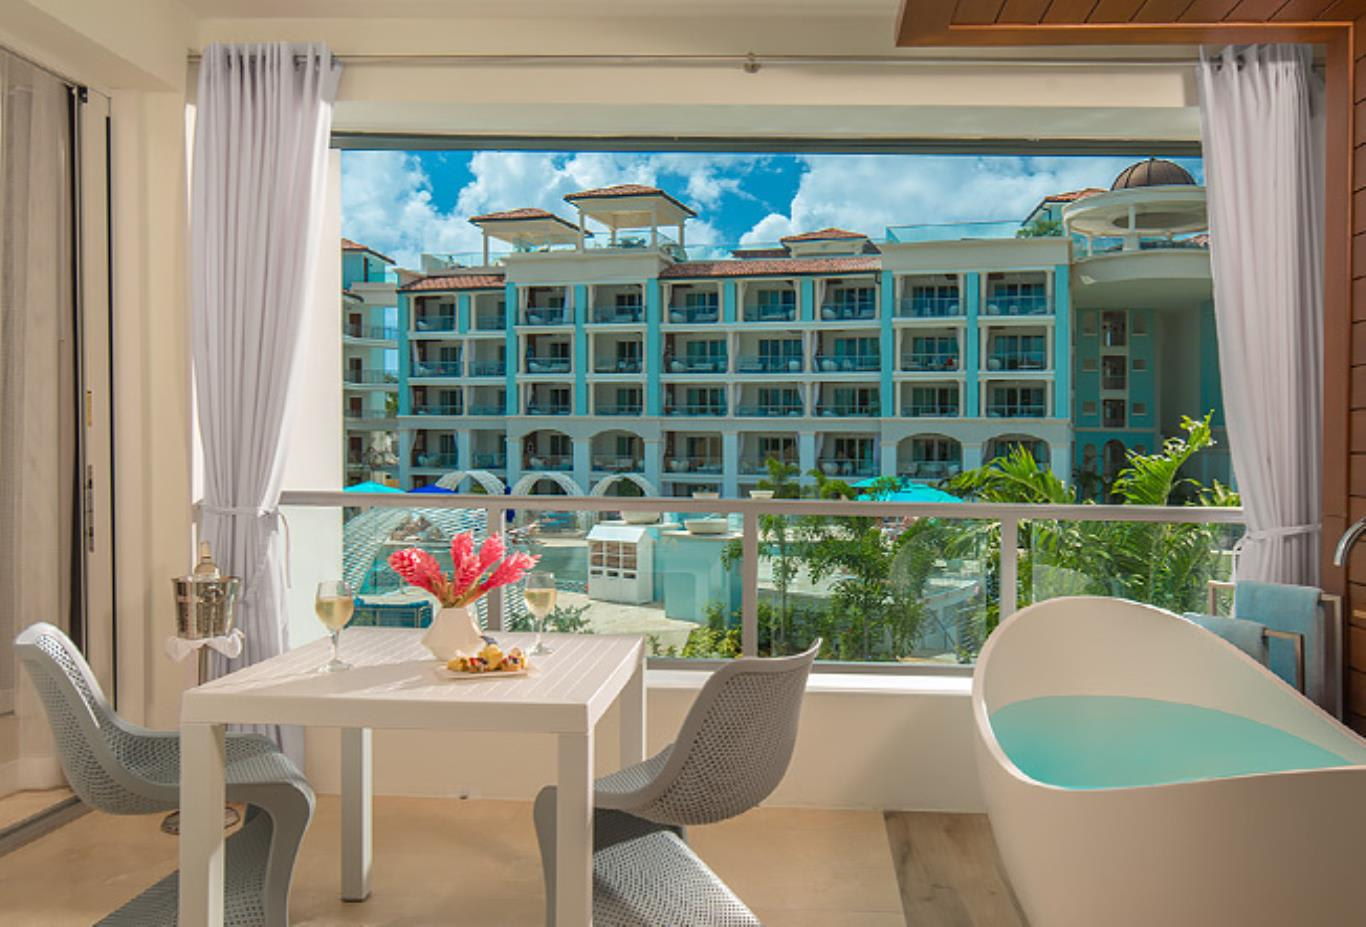 M1B Millionaire Butler Oceanview One Bedroom Suite with Balcony Tranquillity Soaking Tub